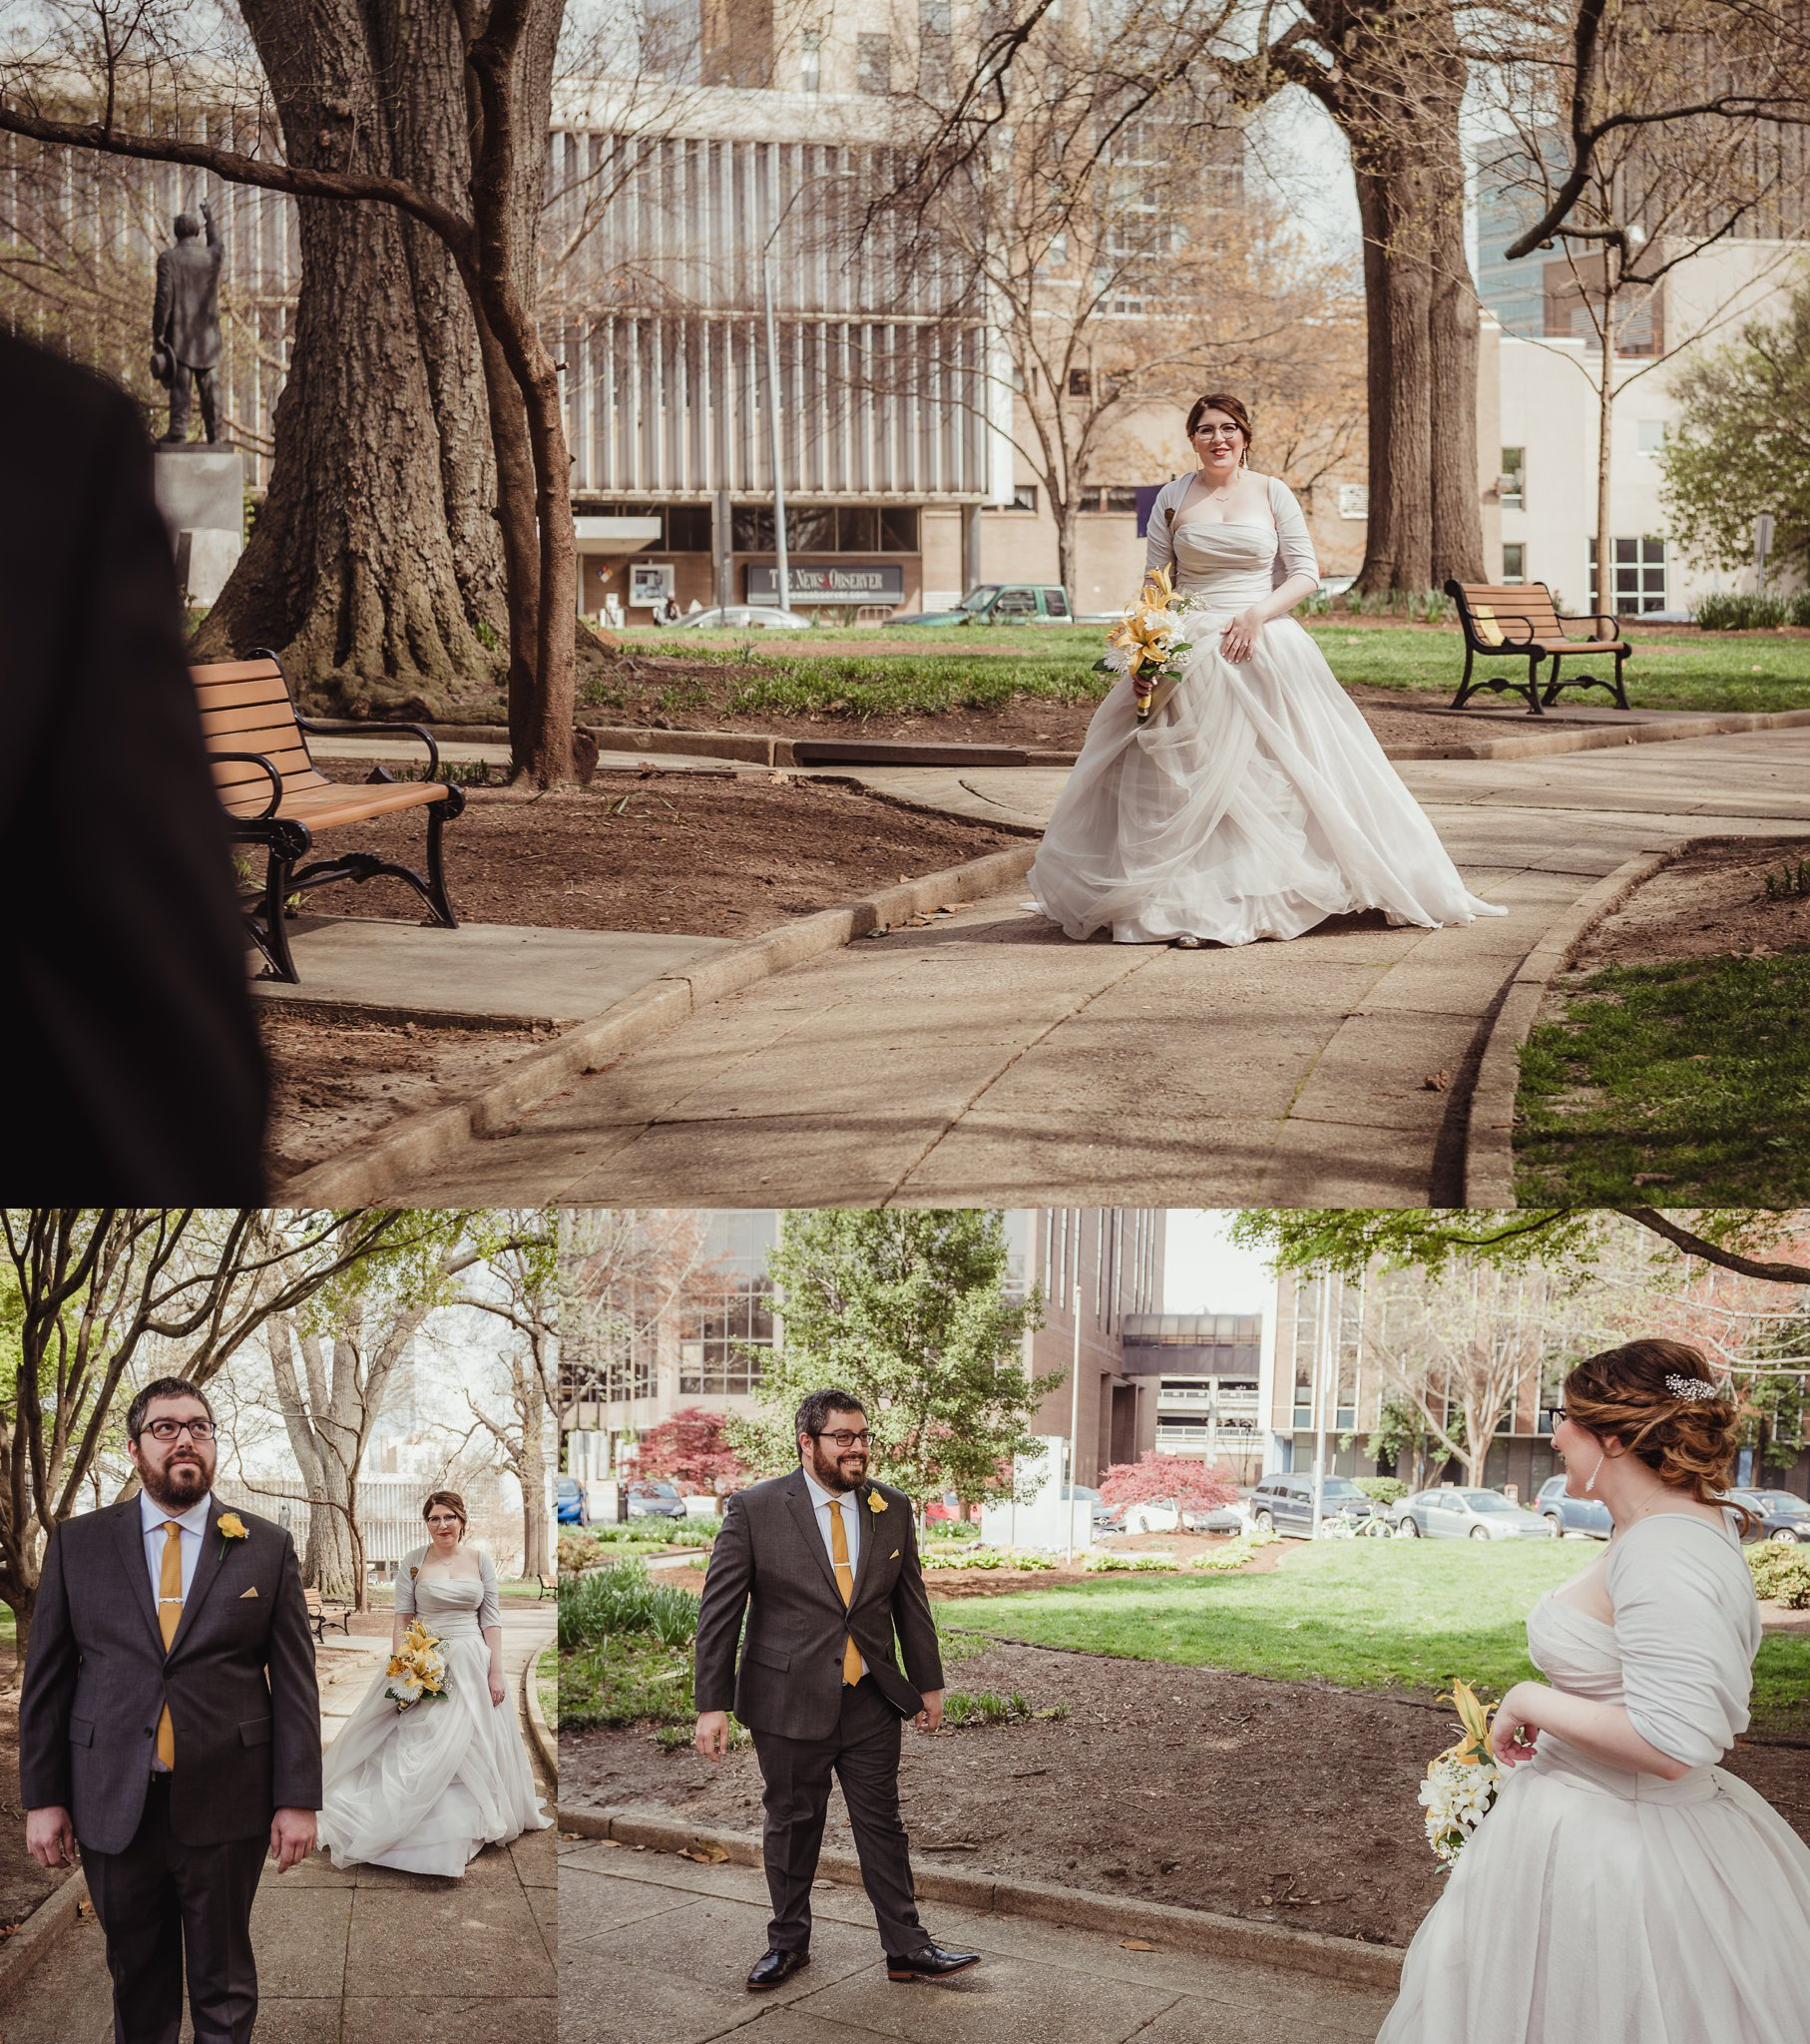 The bride and groom have their first look in the park before their wedding day in downtown Raleigh, picture by Rose Trail Images.